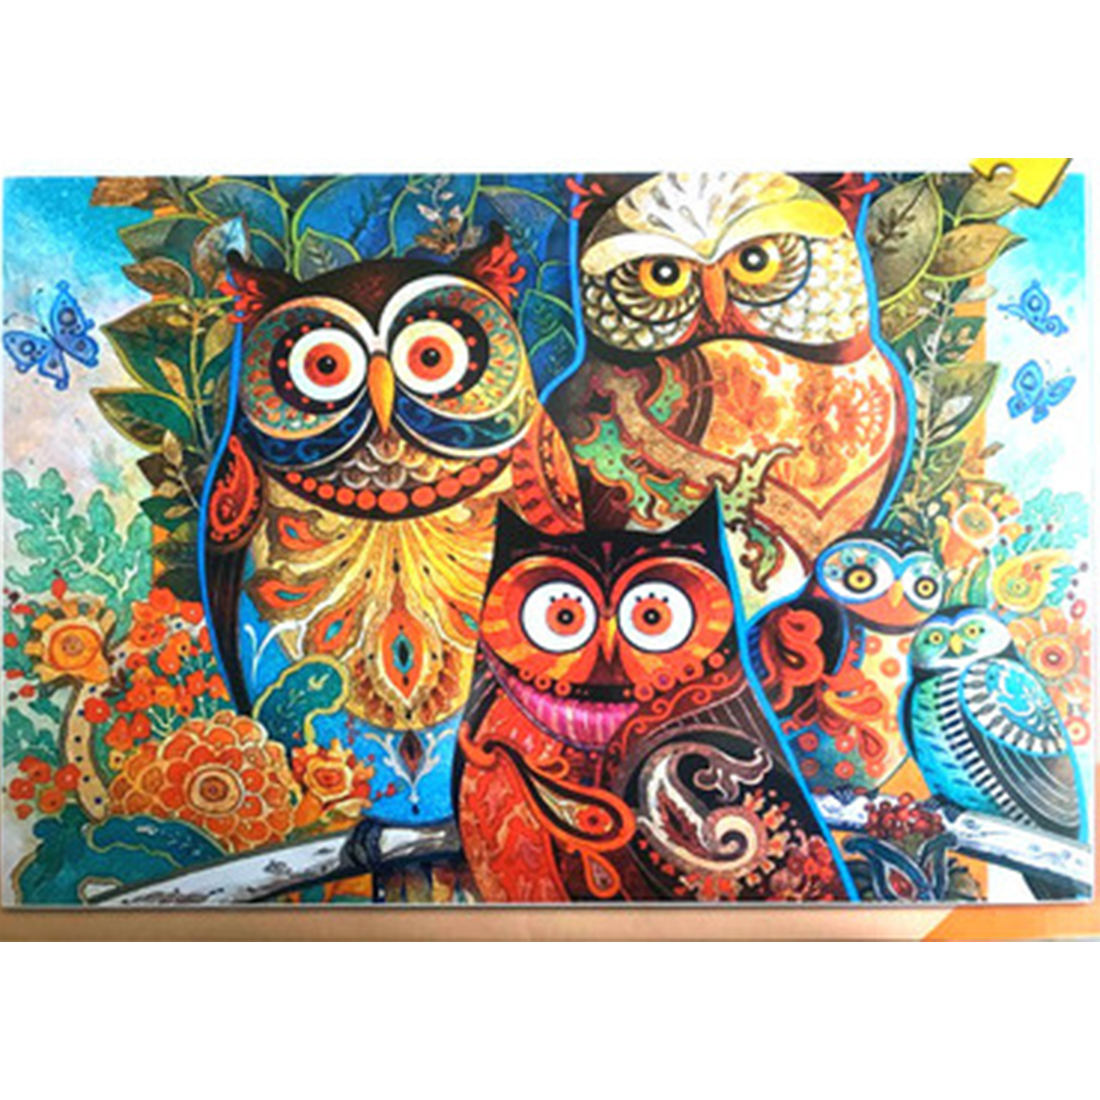 1000Pcs/set General Jigsaw Puzzle Beautiful Pattern Jigsaw Learning Puzzle For Children Adults - Beige Owl